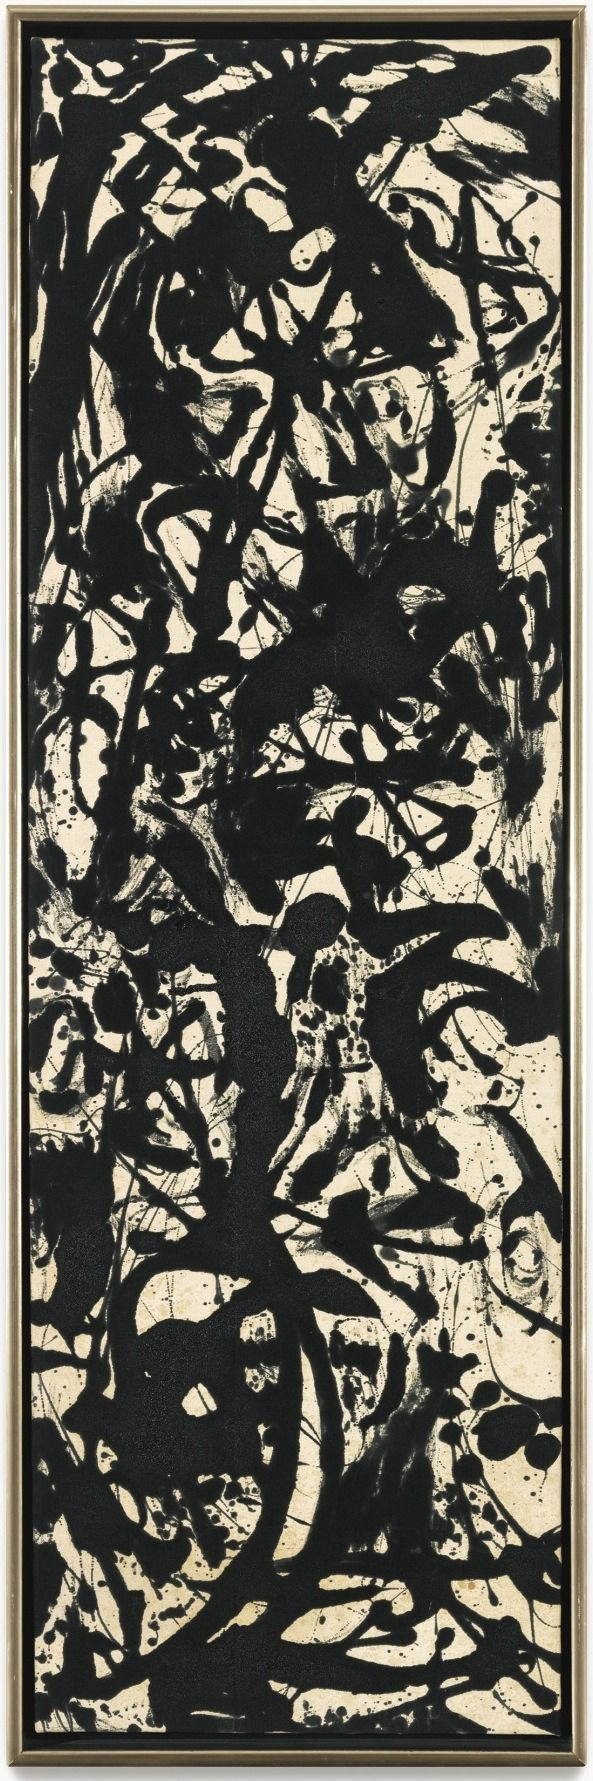 best images about jackson pollock jackson loverofbeauty ldquo jackson pollock black and white painting 1952 rdquo